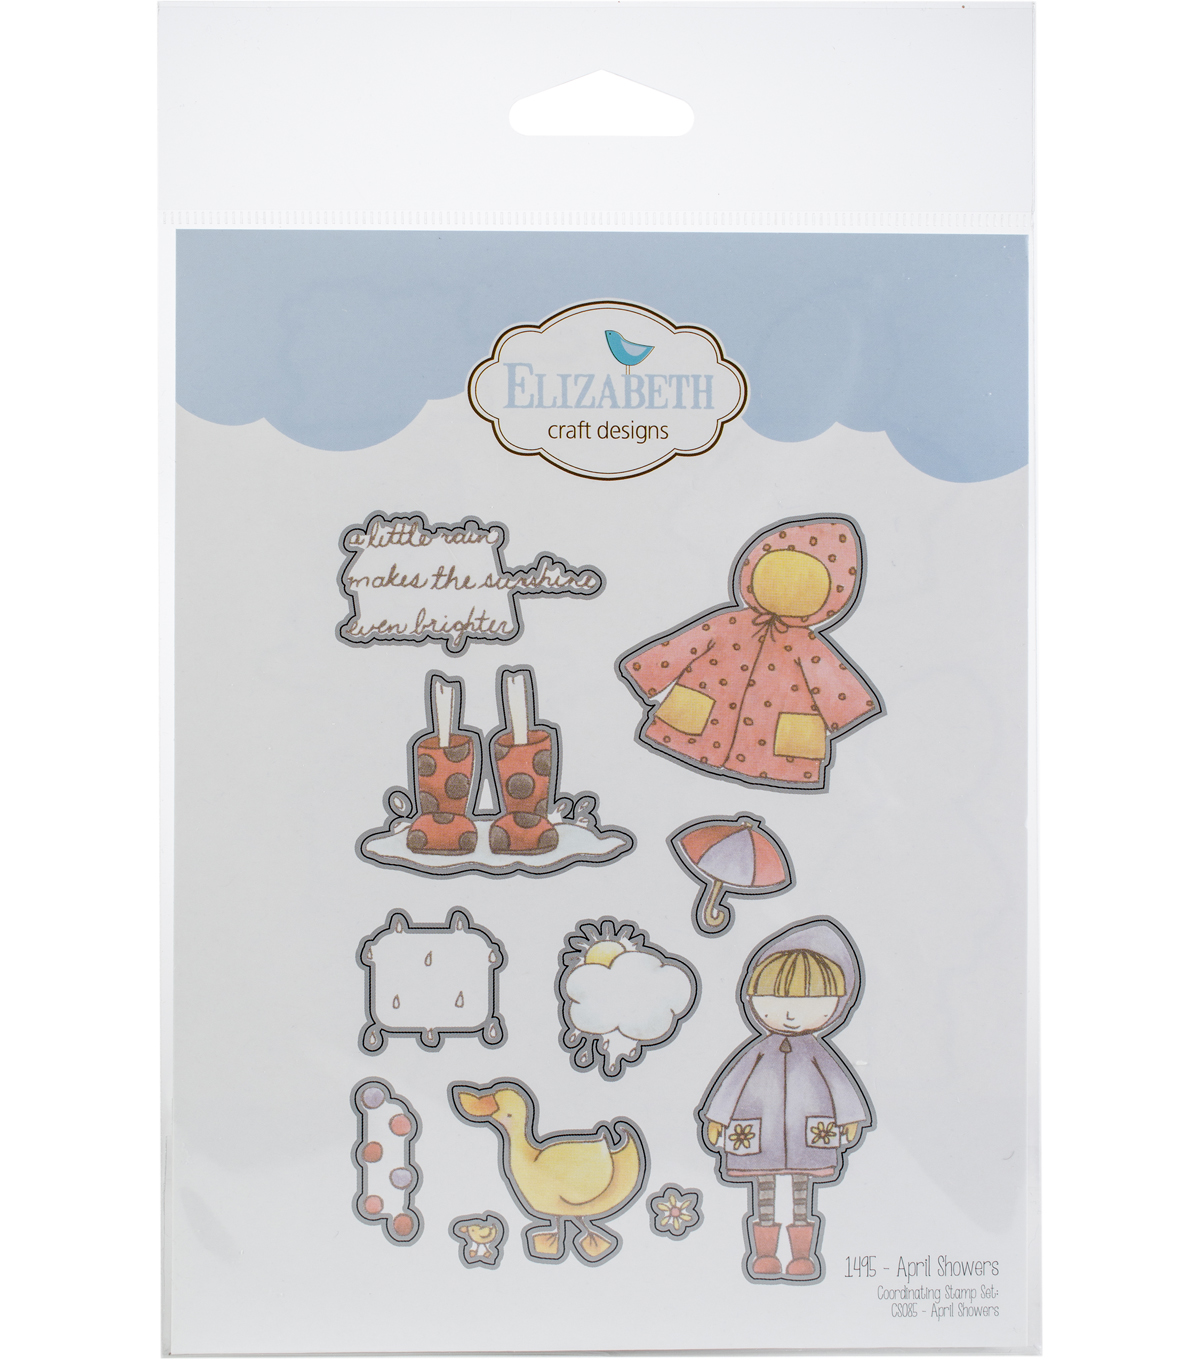 Elizabeth Craft Designs 11 Pk Metal Dies April Showers Joann